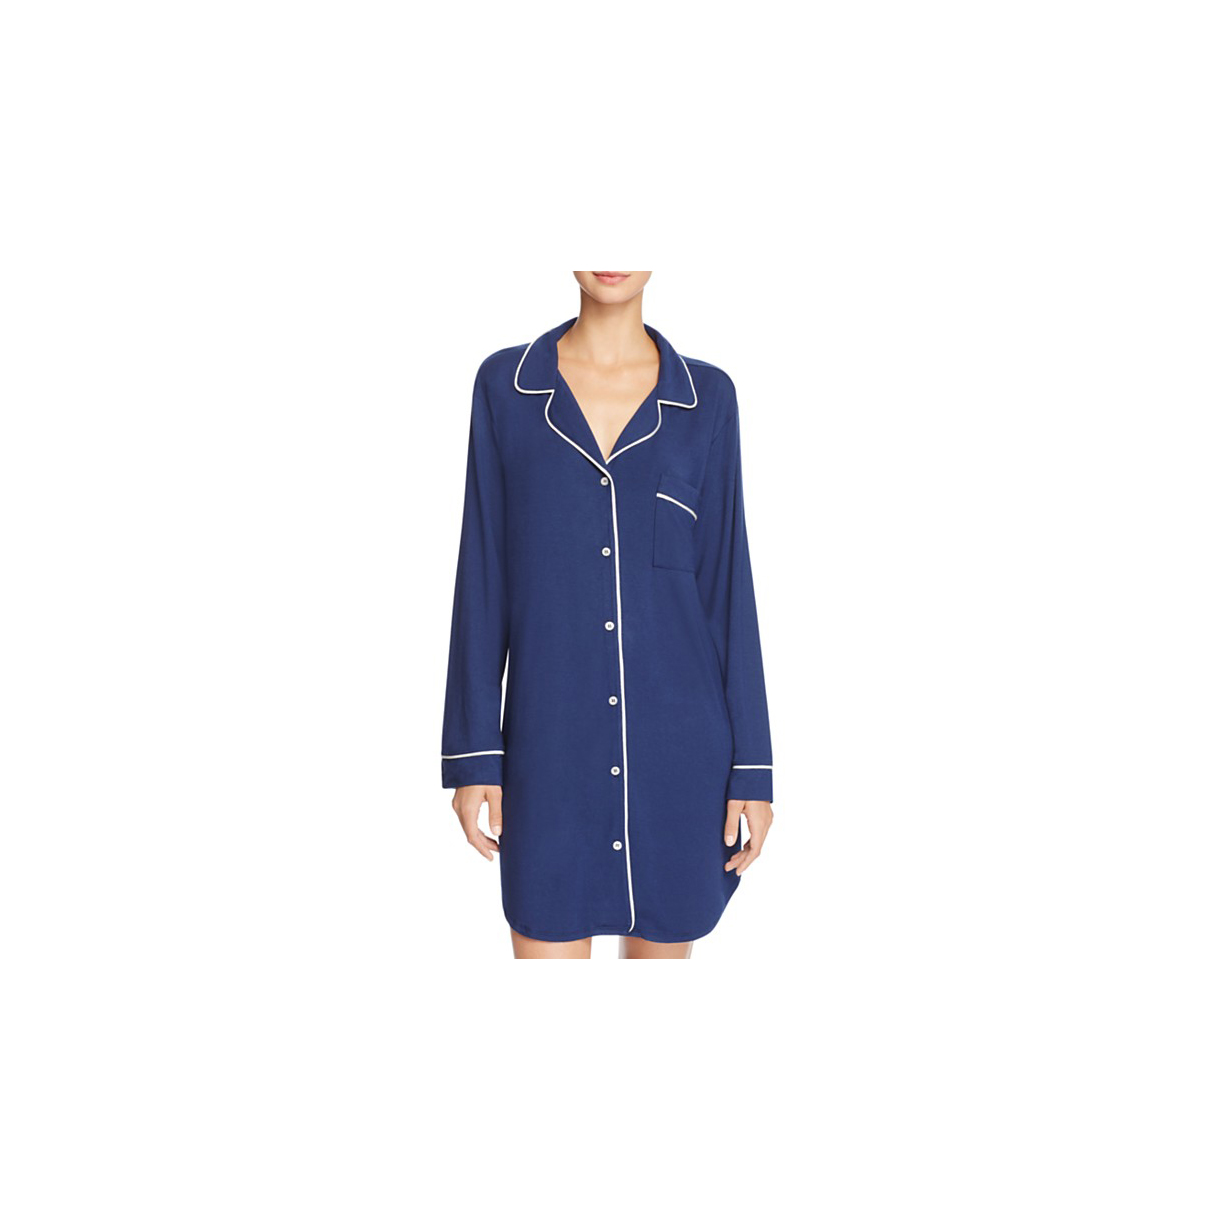 Valentines Day Ideas for Her: Eberjey Gisele Sleepshirt